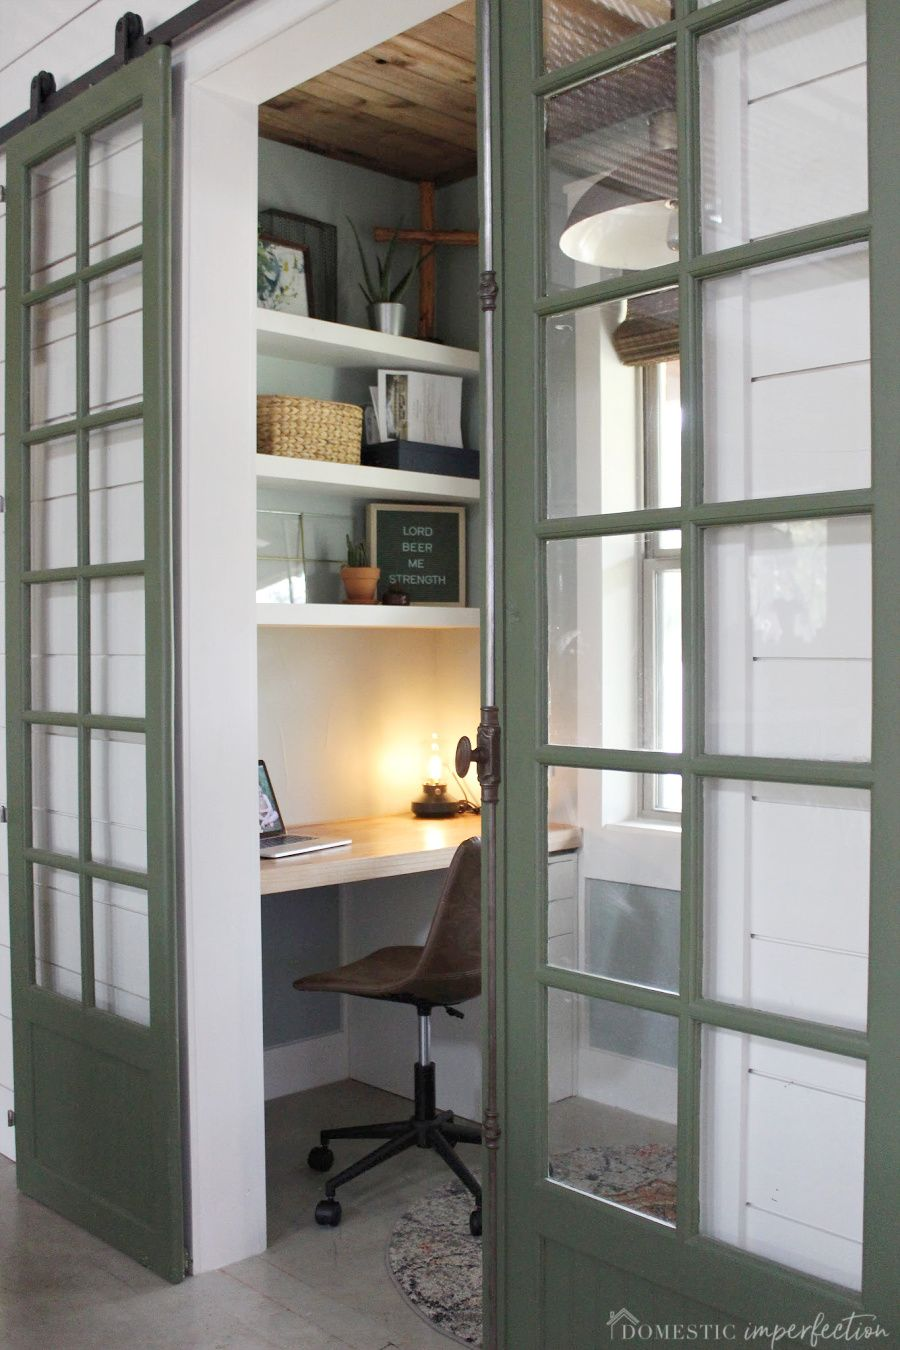 Small home office   #homeoffice #smallspaces #office #famhouseoffice